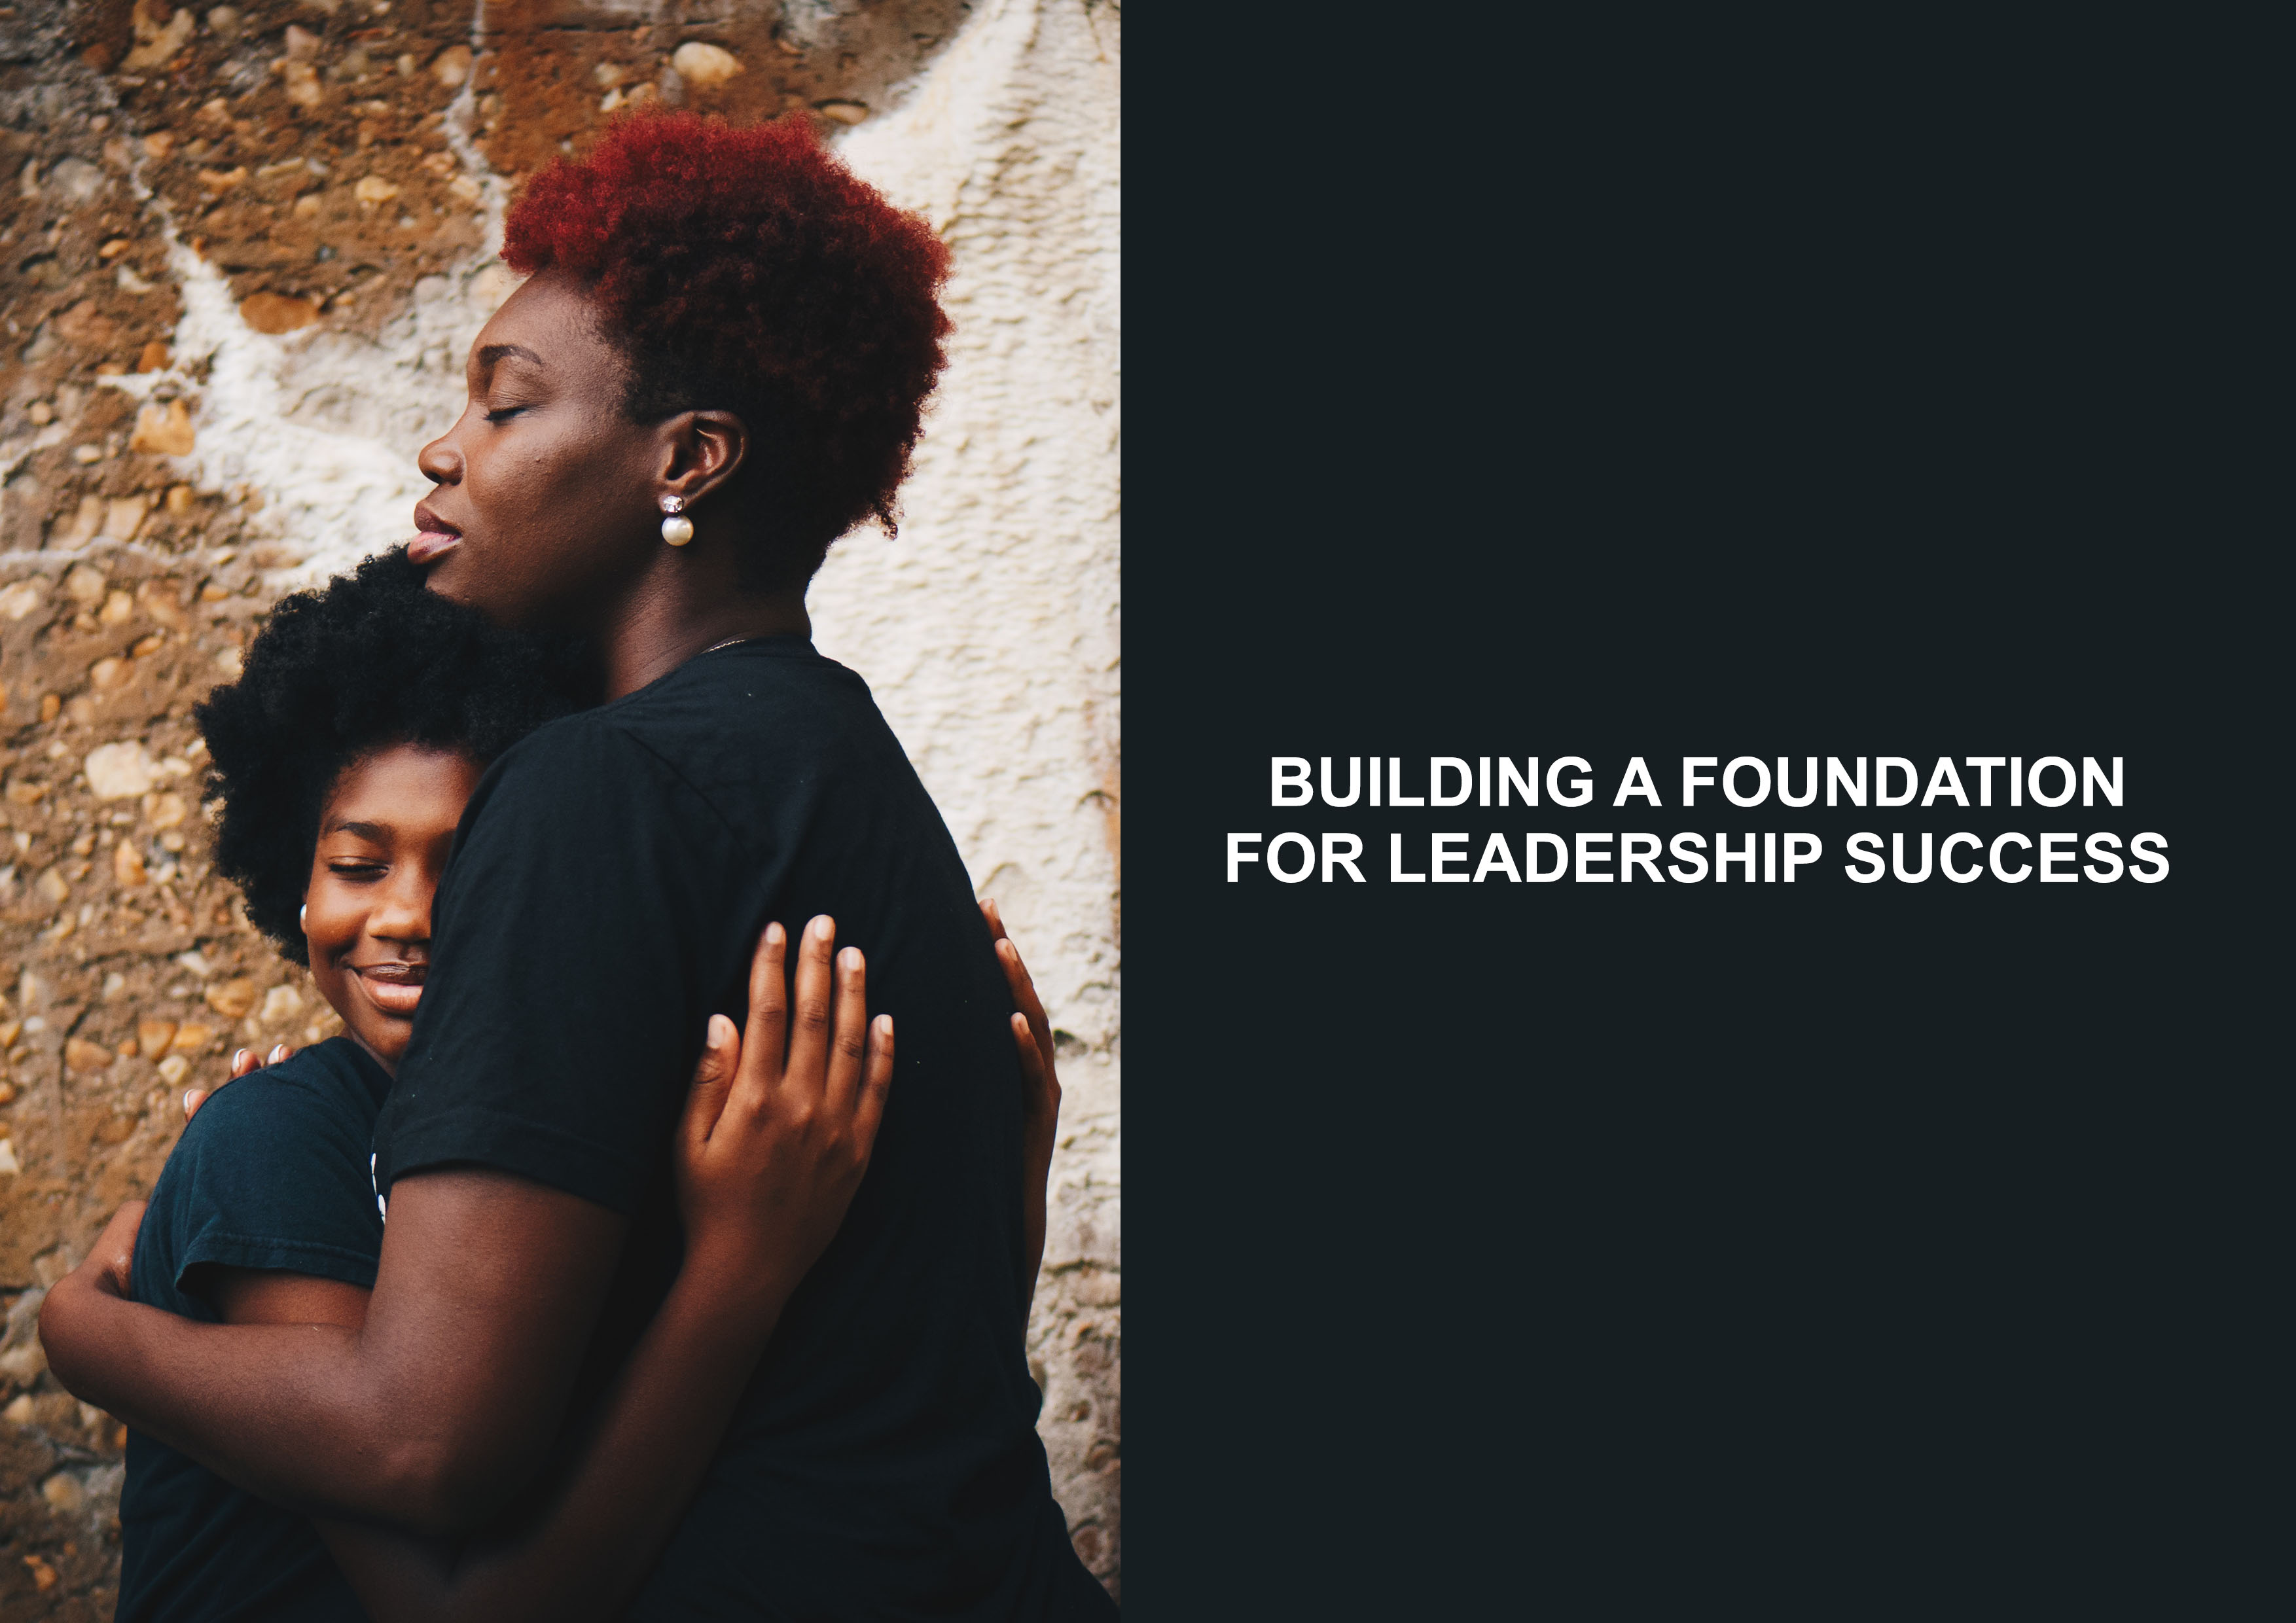 Building A Foundation For Leadership Success